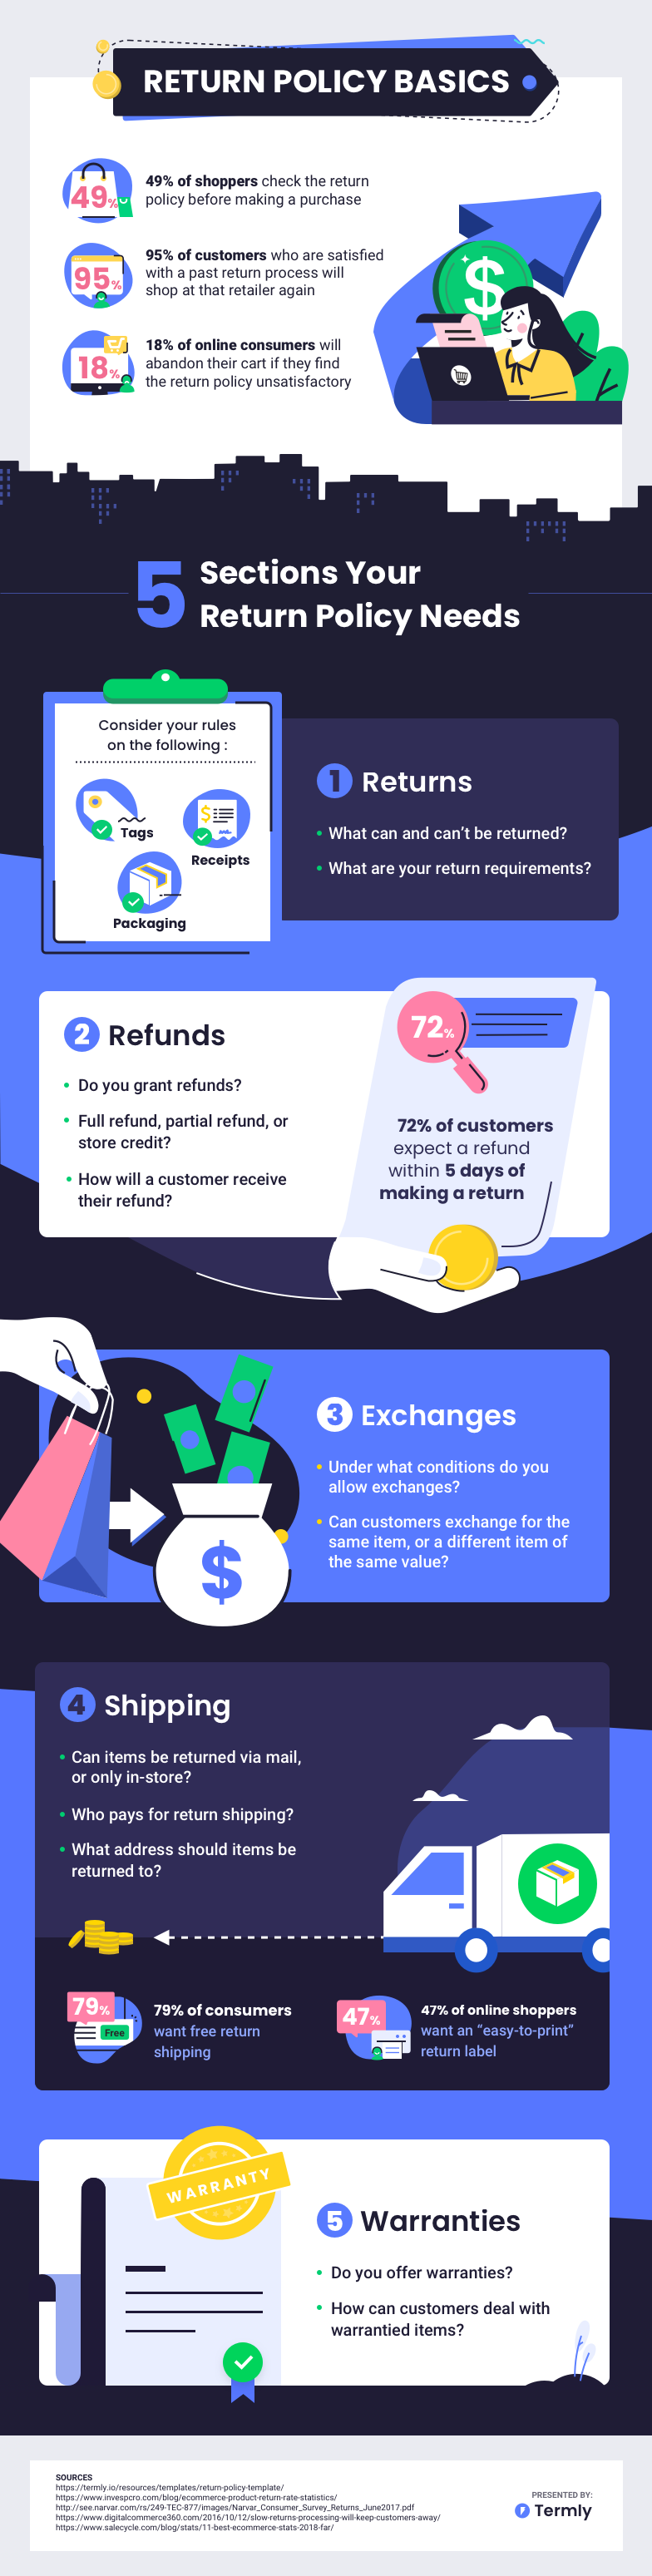 return policy basics infographic